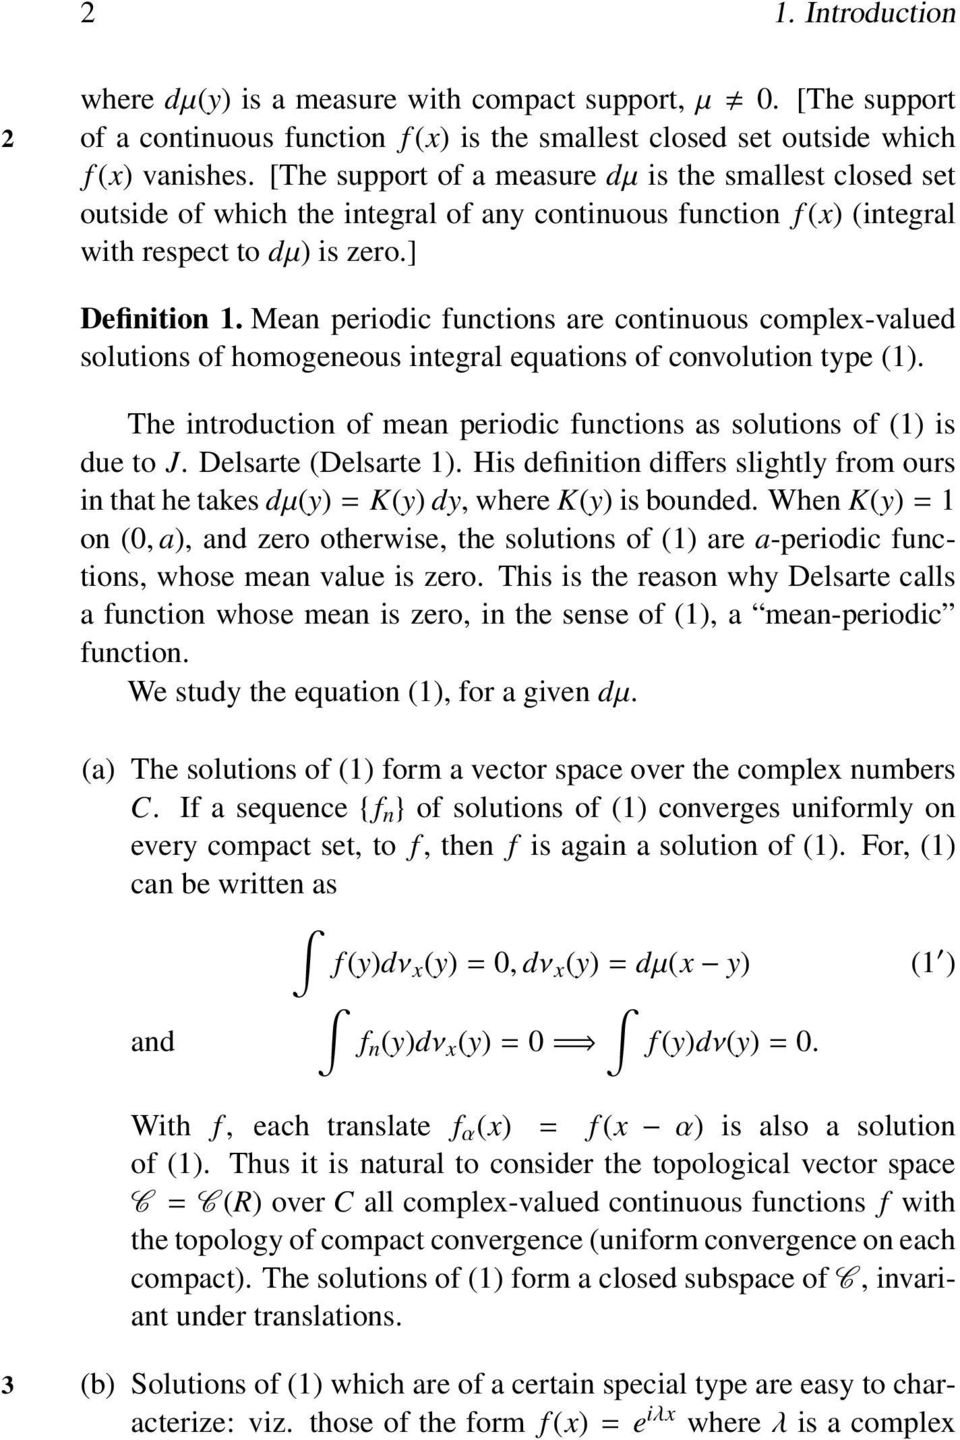 Mean periodic functions are continuous complex-valued solutions of homogeneous integral equations of convolution type (1). The introduction of mean periodic functions as solutions of (1) is due to J.